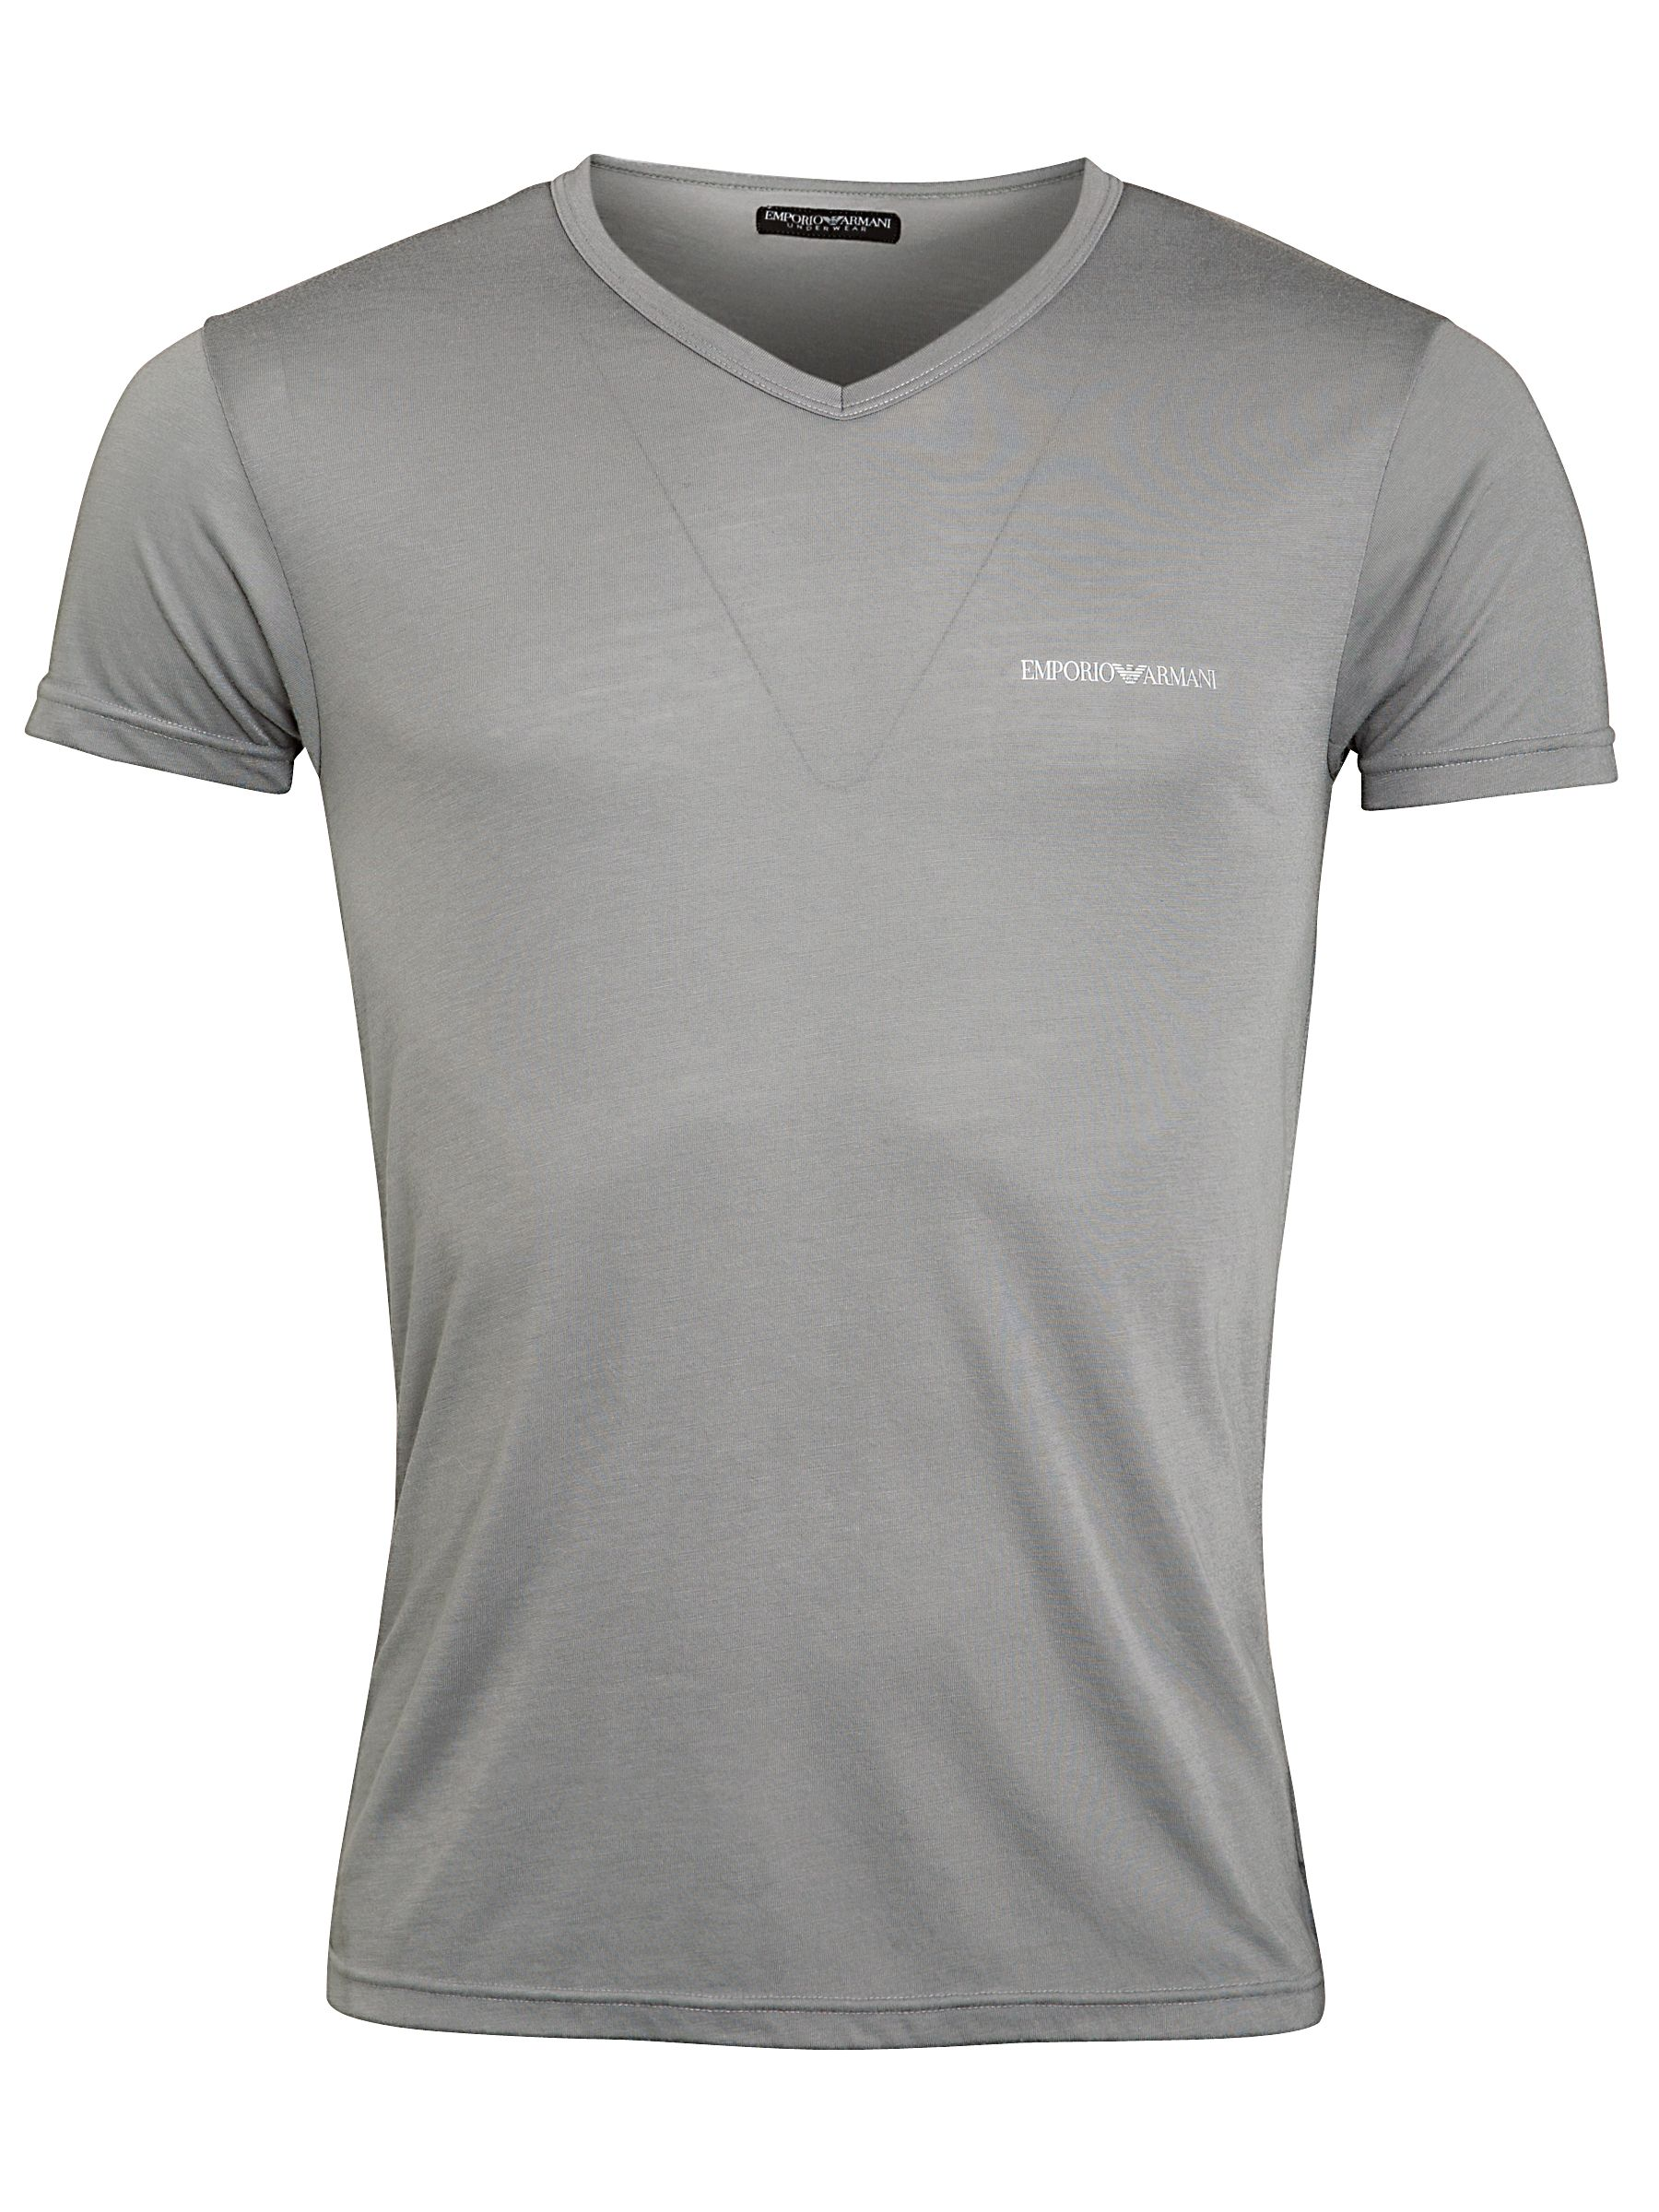 Emporio Armani V-Neck Cotton T-Shirt, Grey